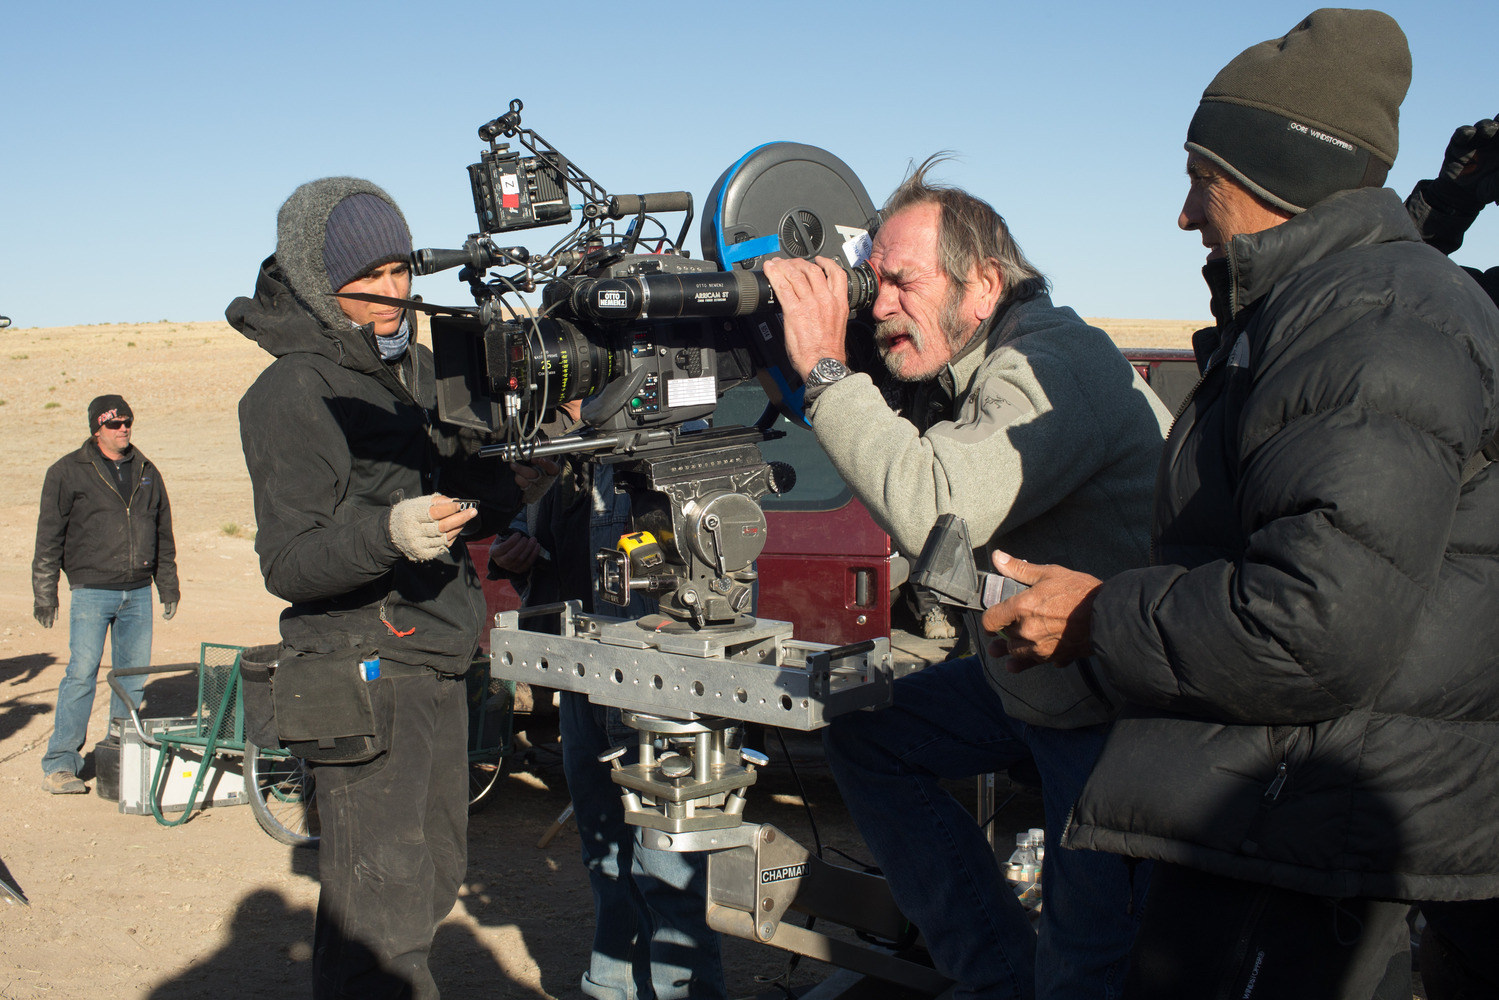 The Homesman Behind the Scenes Photos & Tech Specs